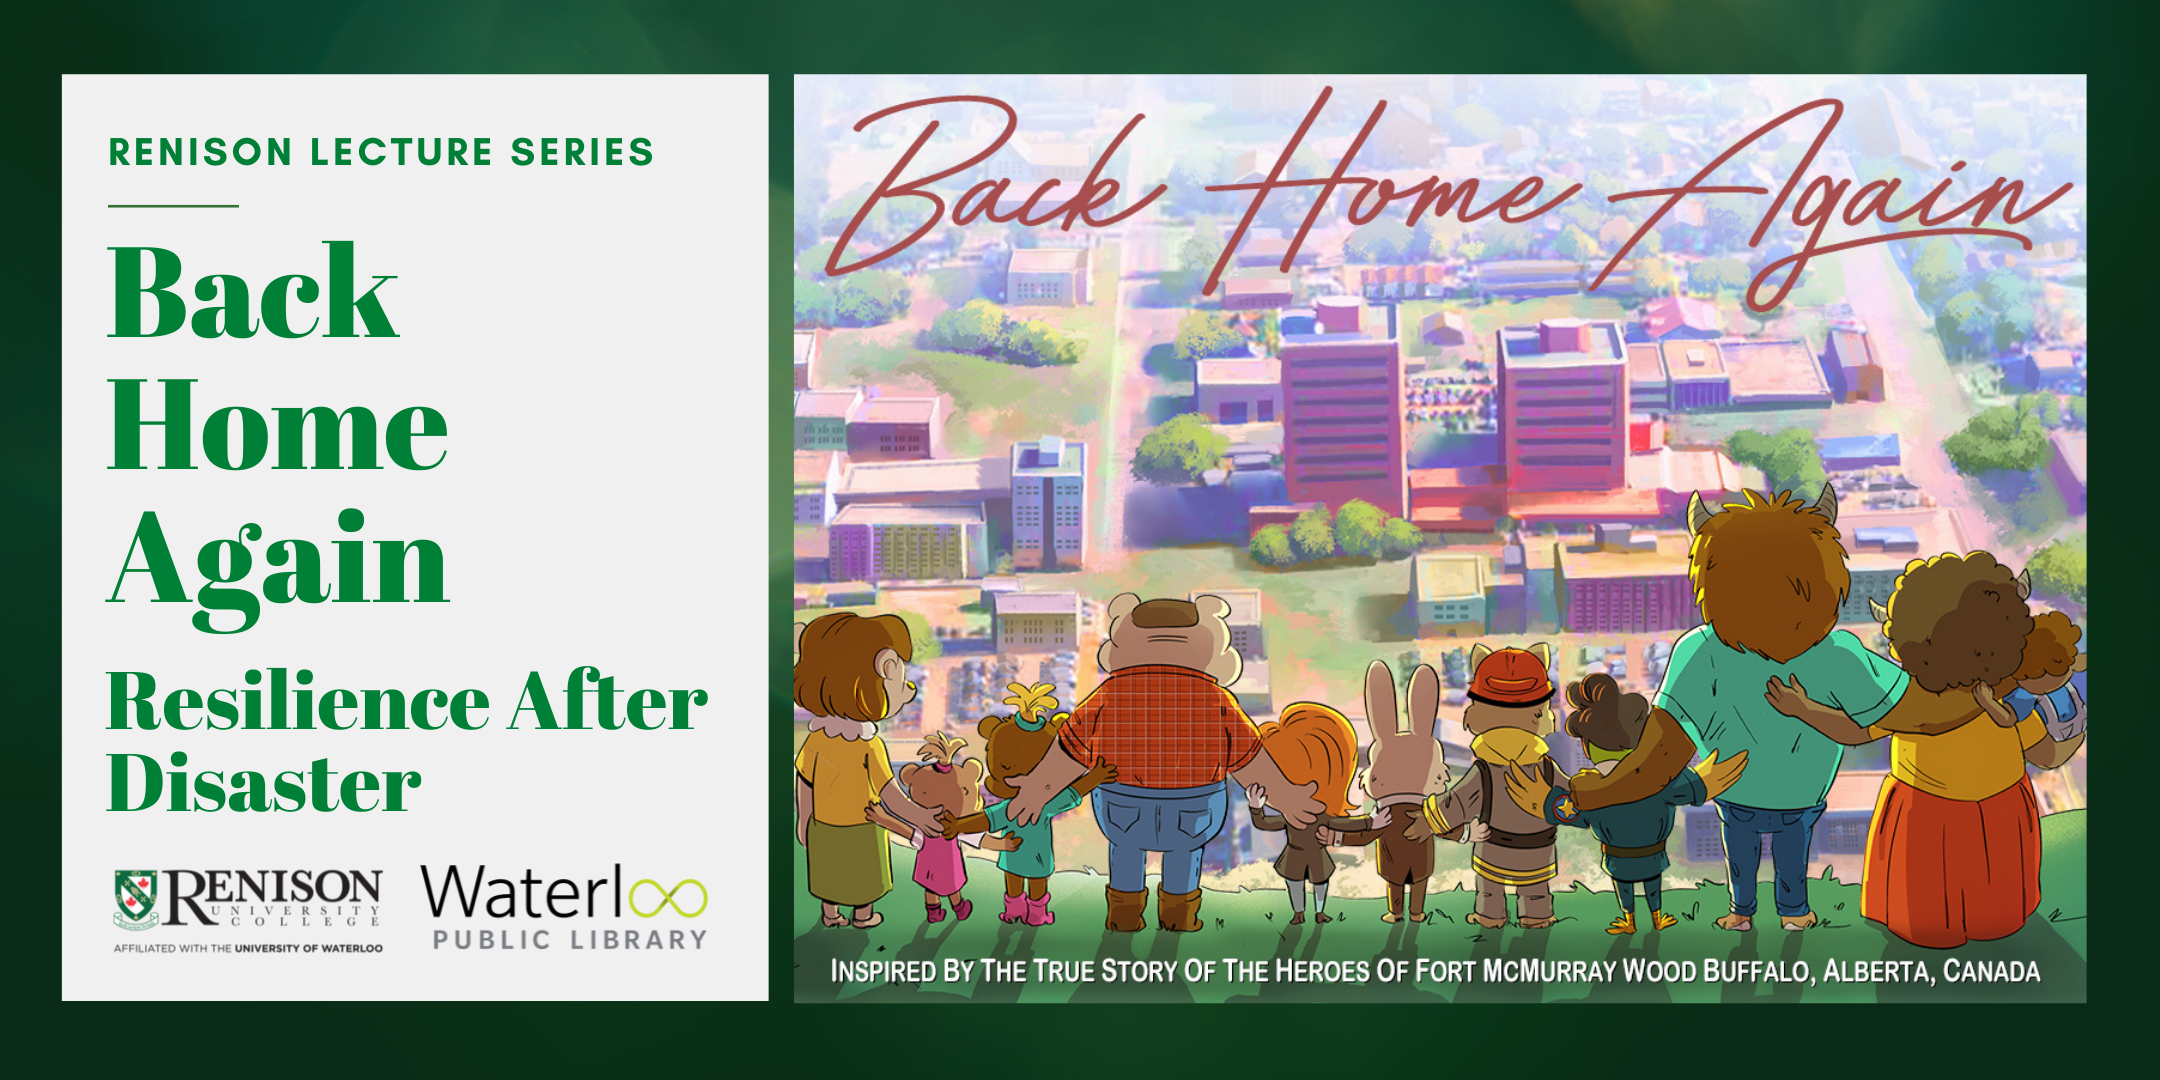 Event image with image from movie Back Home Again, animated animals looking out over a town.